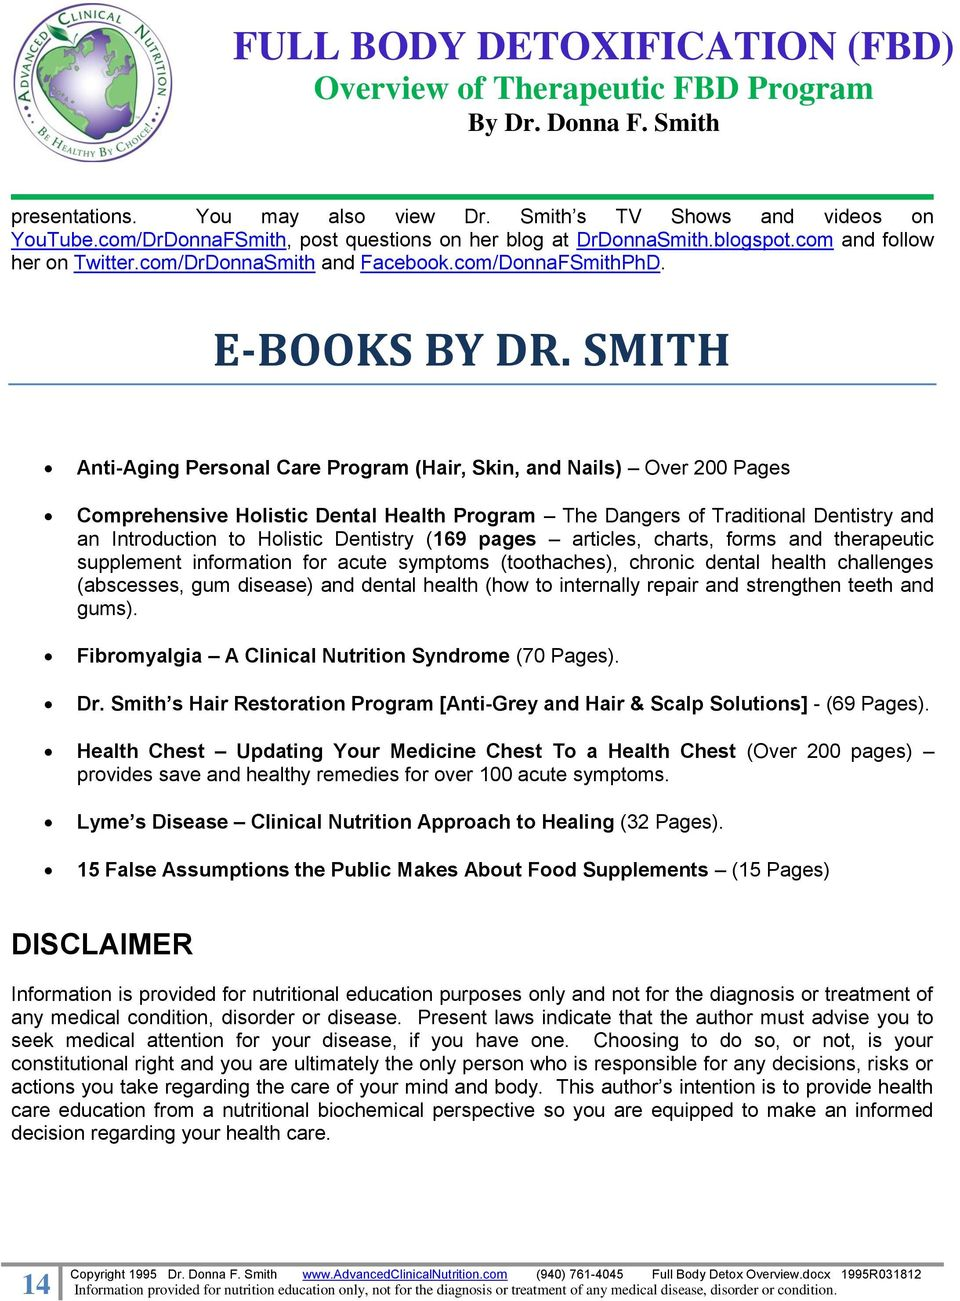 SMITH Anti-Aging Personal Care Program (Hair, Skin, and Nails) Over 200 Pages Comprehensive Holistic Dental Health Program The Dangers of Traditional Dentistry and an Introduction to Holistic